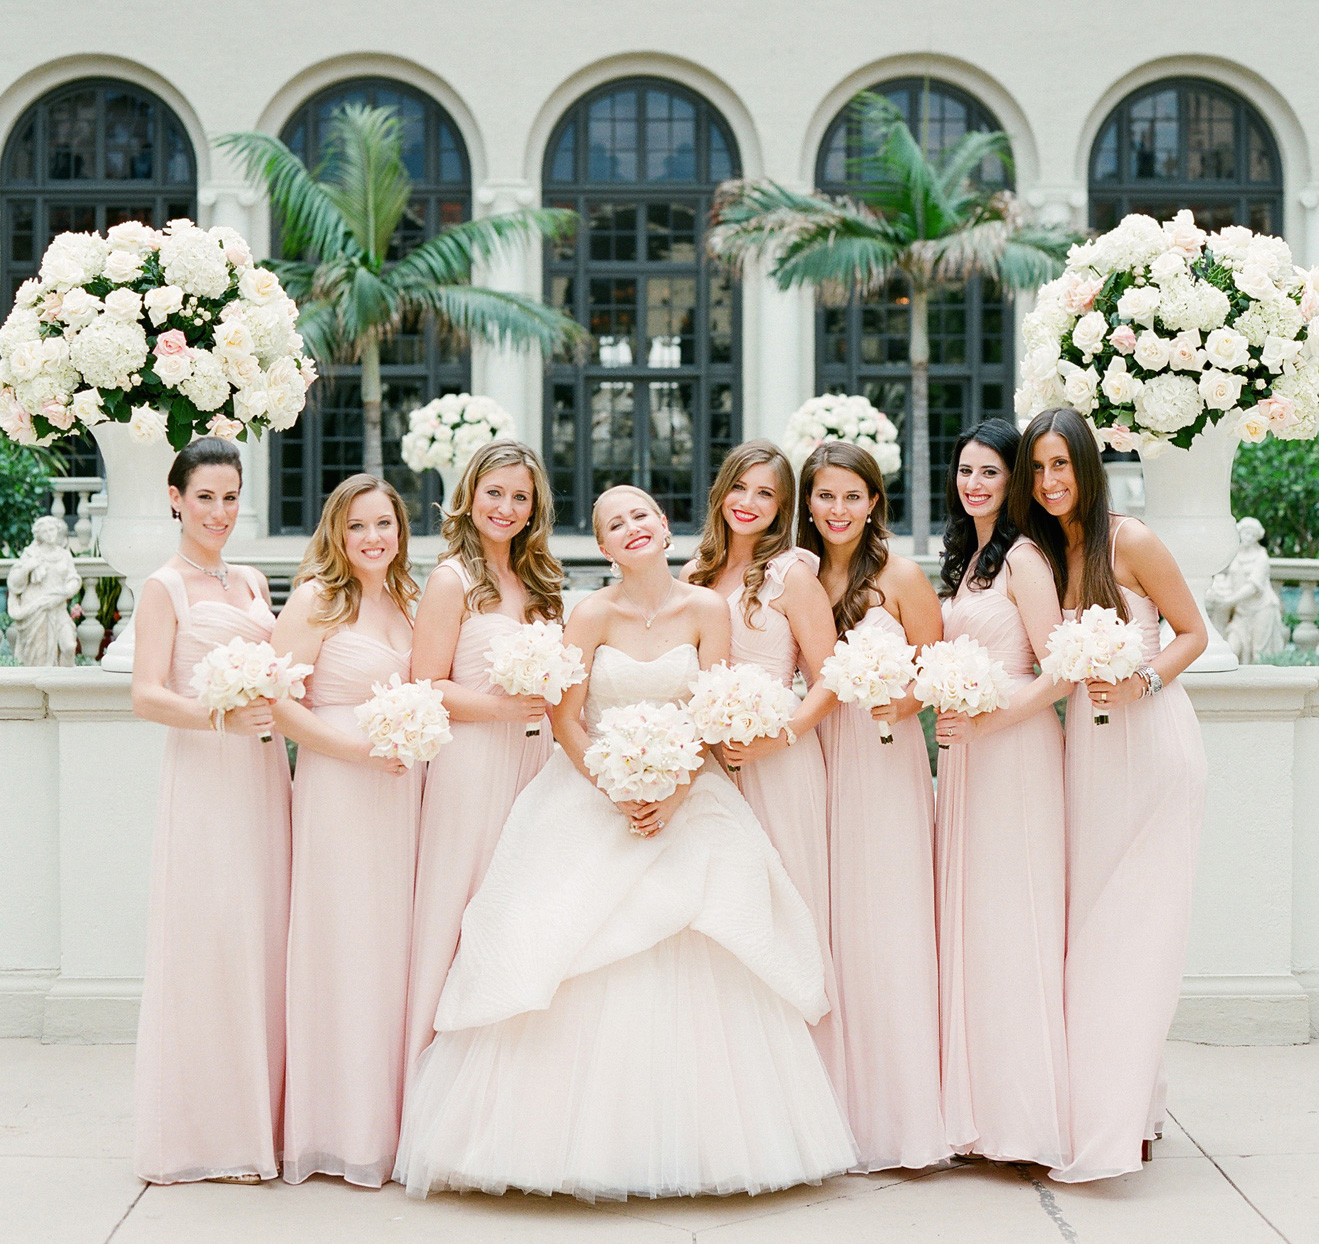 Bridesmaid dresses blush bridesmaid gowns from real weddings mismatched neckline long blush pink bridesmaid dresses ombrellifo Gallery